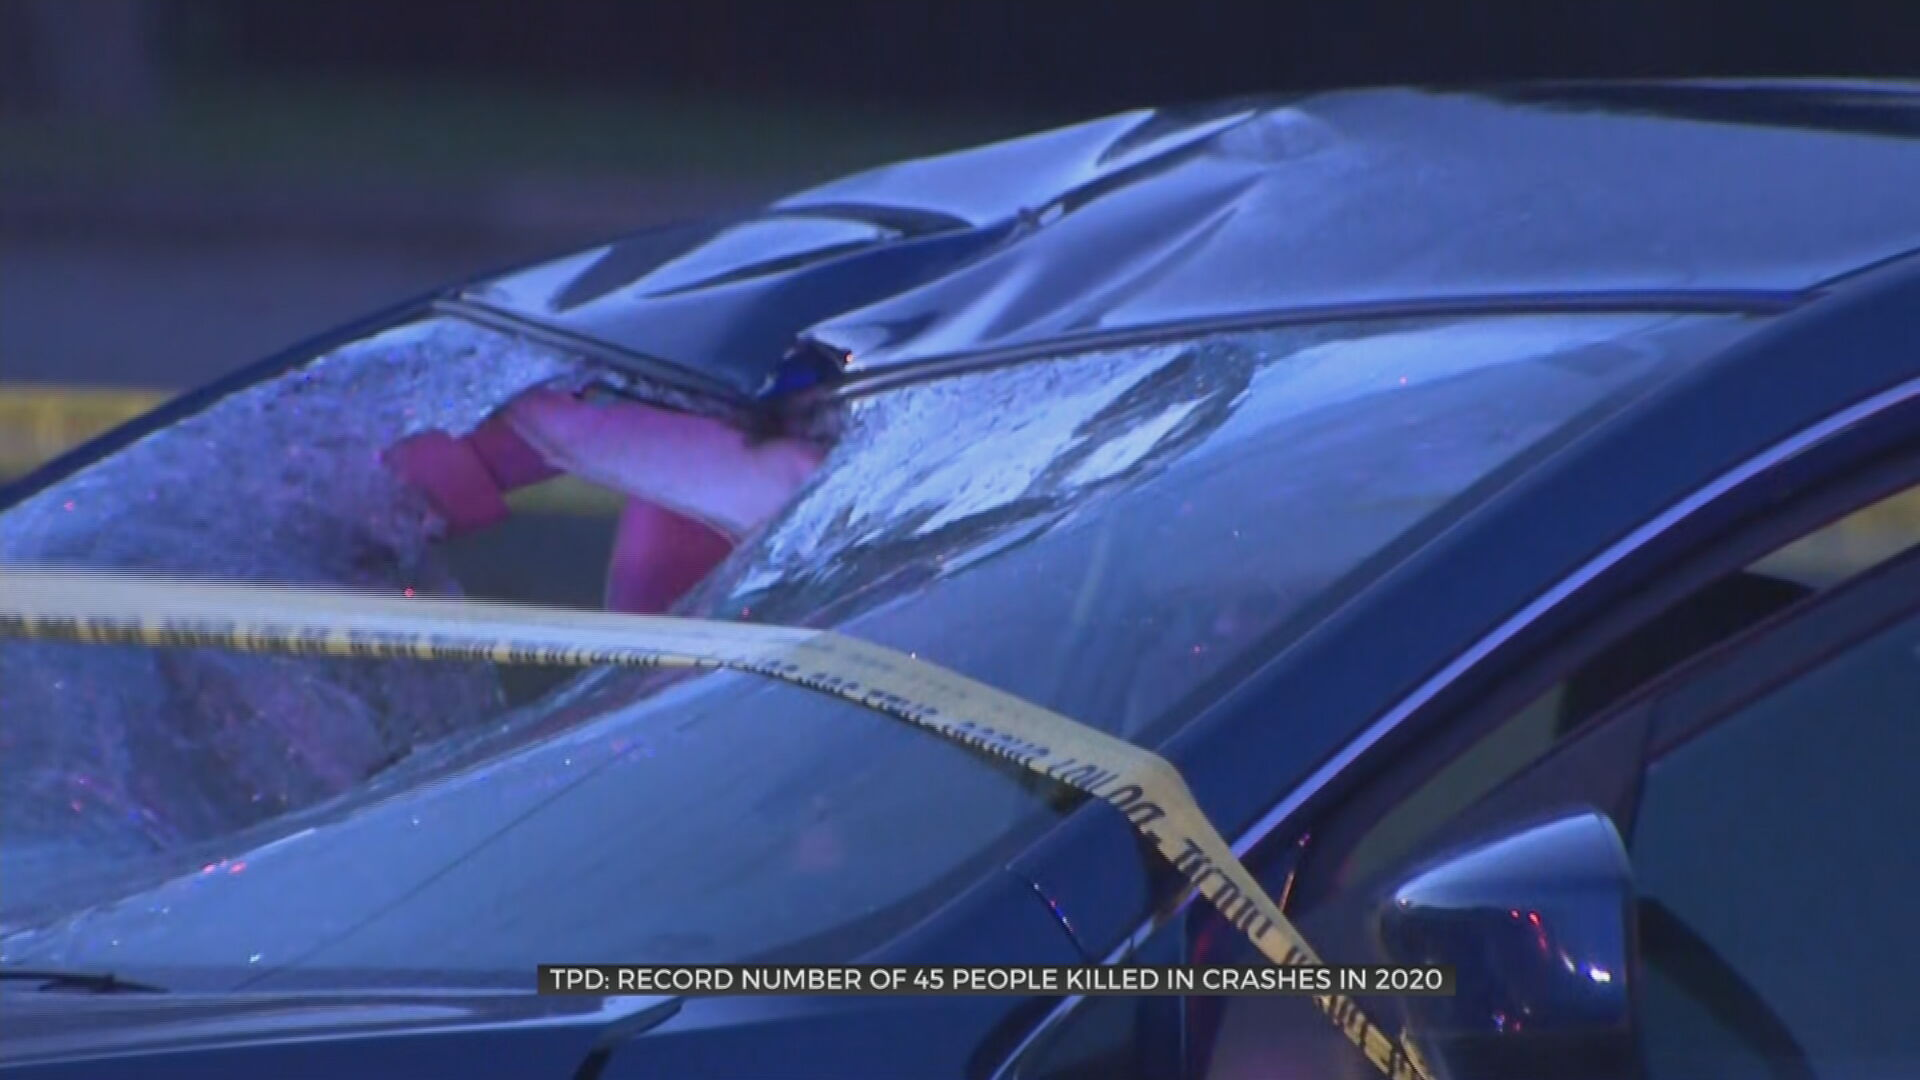 TPD: Record Number Of People Killed In Car Crashes in 2020